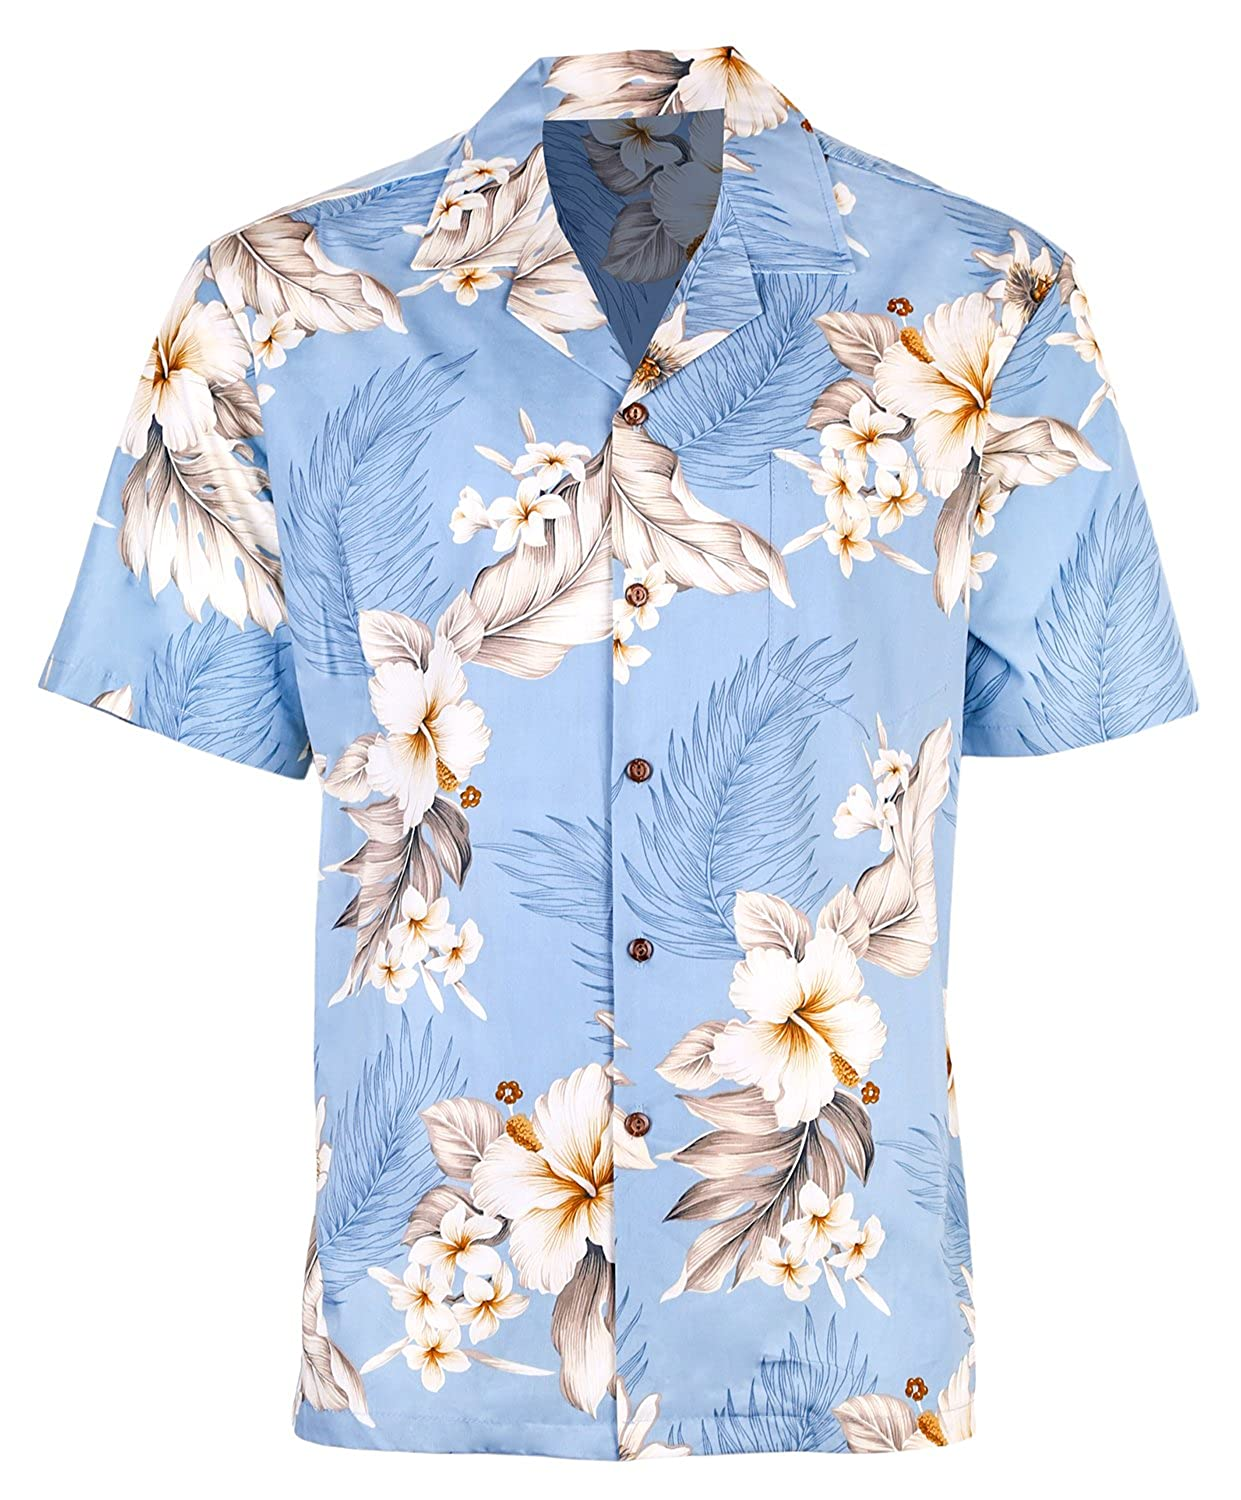 338d11cf KEY FEATURES: All of our Hawaiian shirts feature durable coconut shell  buttons, comfortable short sleeves, and a front pocket patterned to blend  seamlessly ...